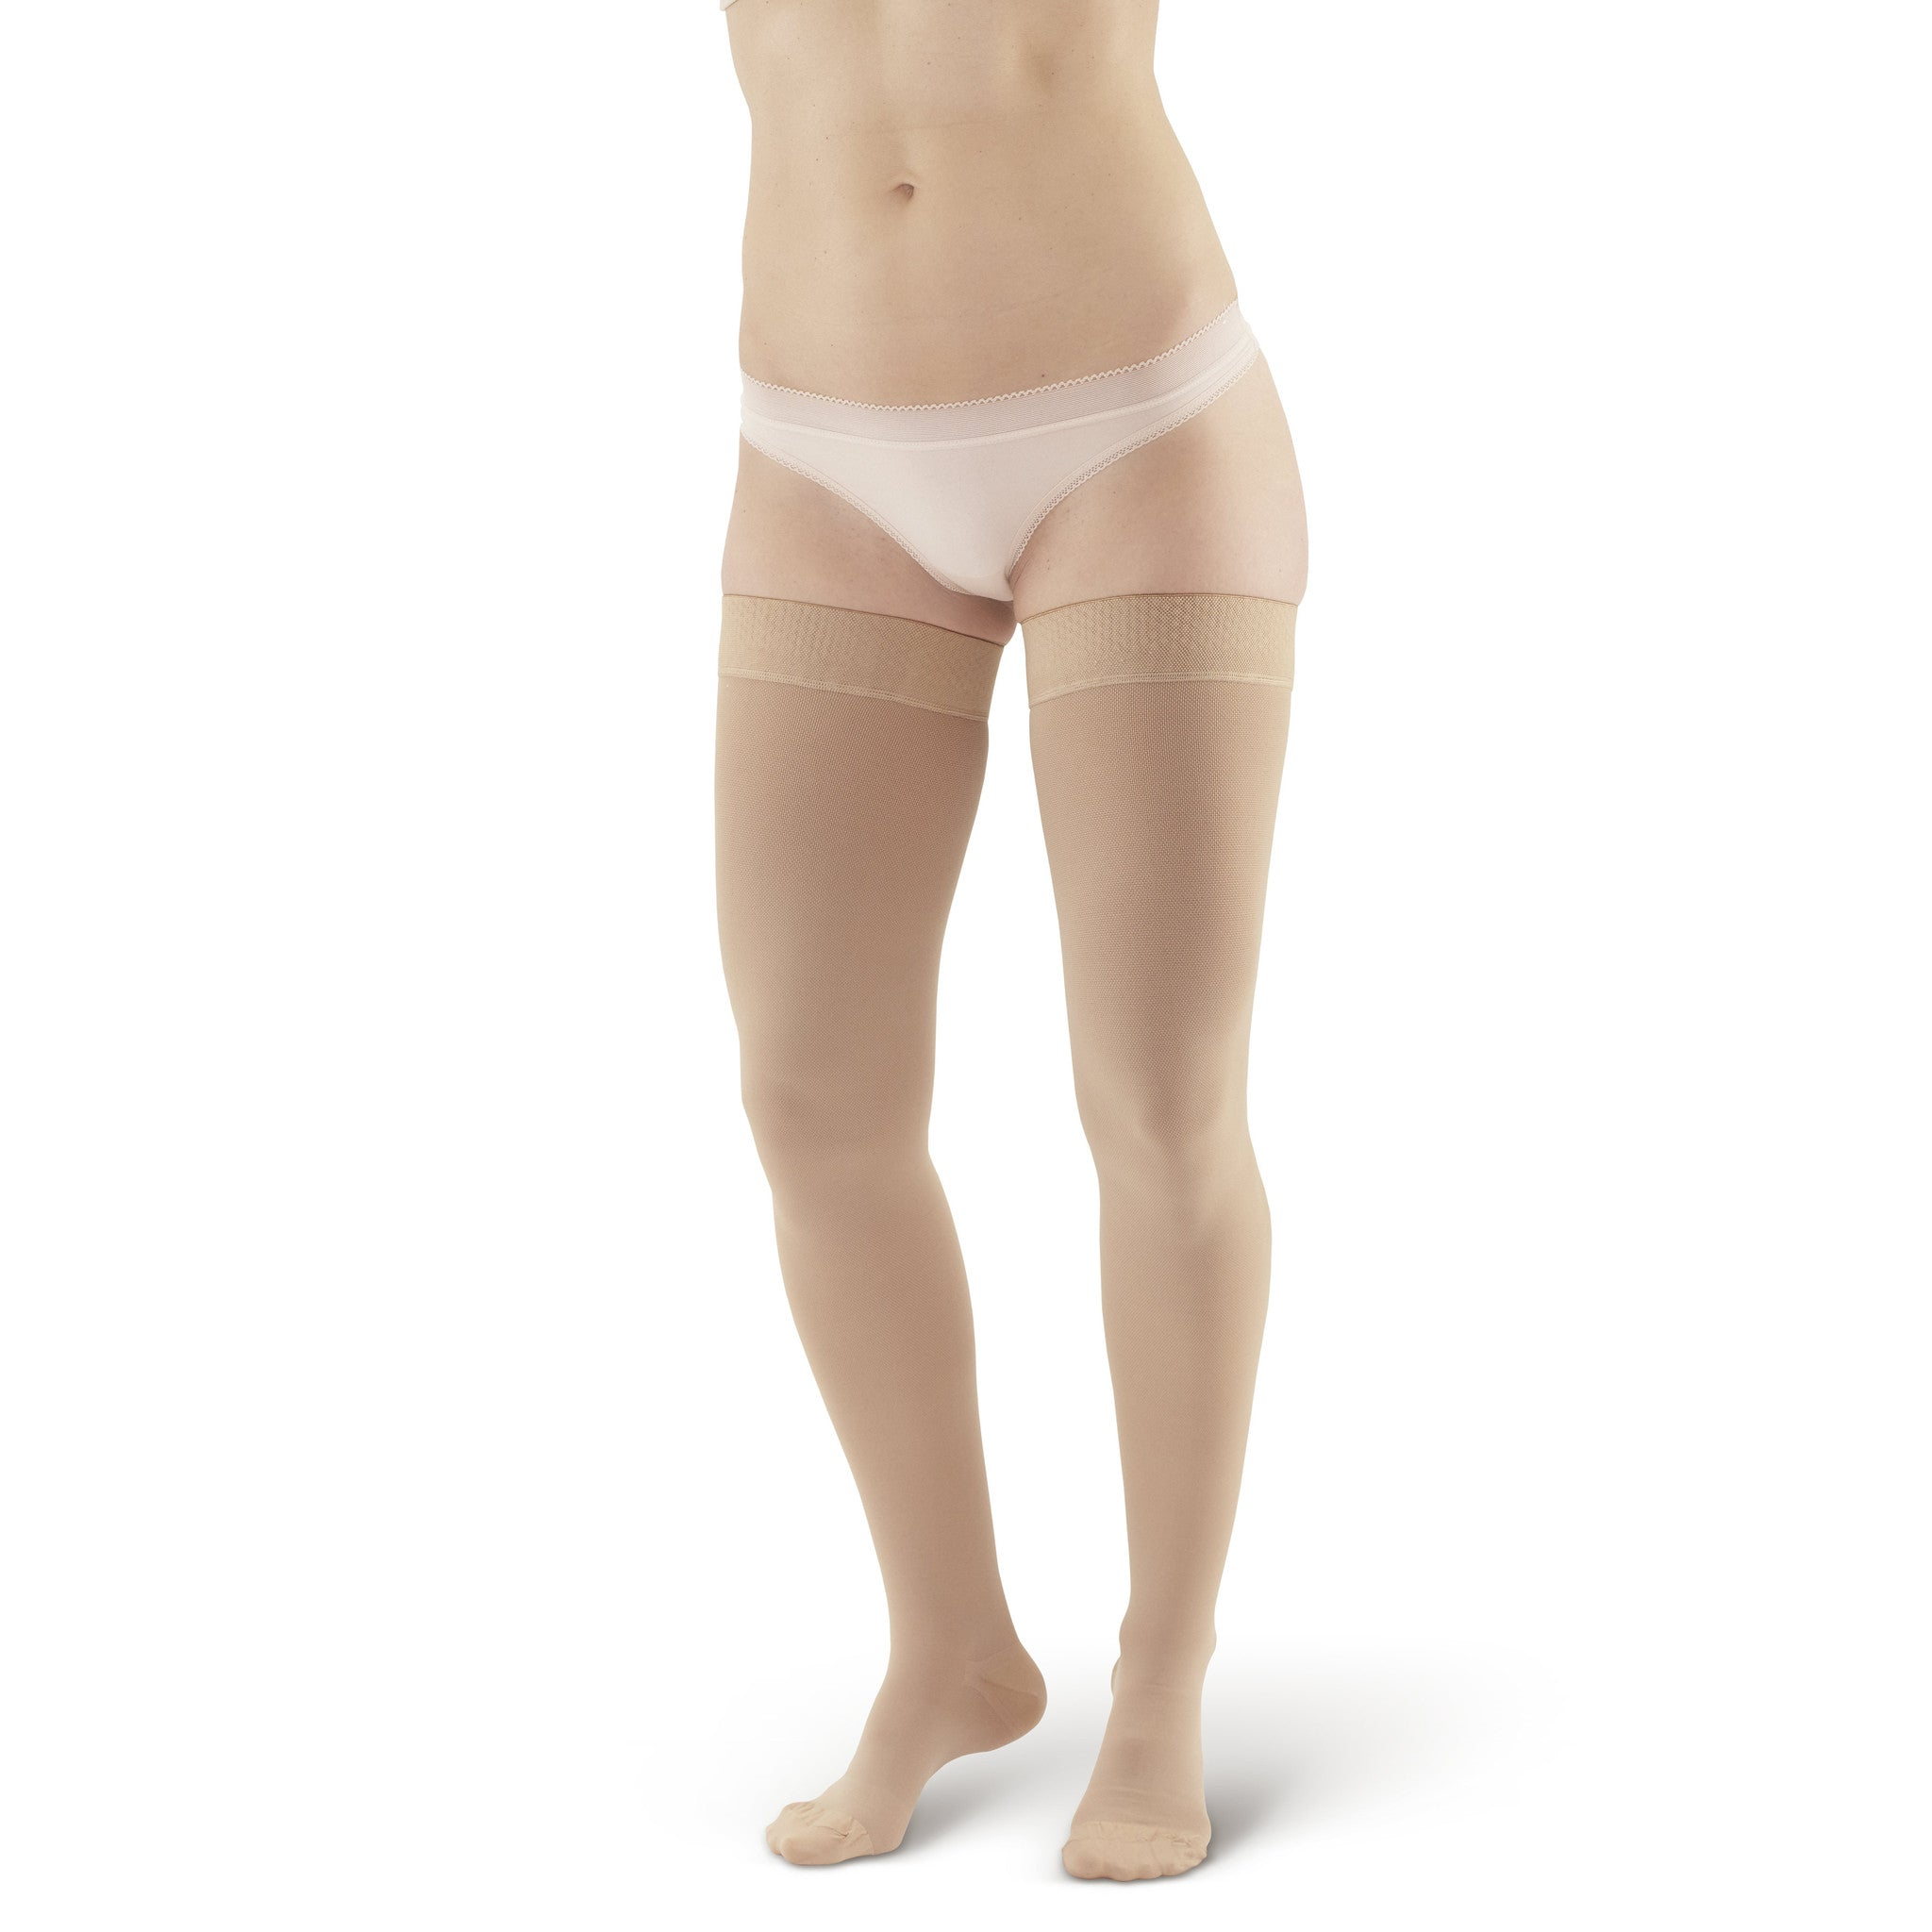 5c7480be118 AW Style 205 Medical Support Closed Toe Thigh Highs w Sili Dot Band - 20 ...